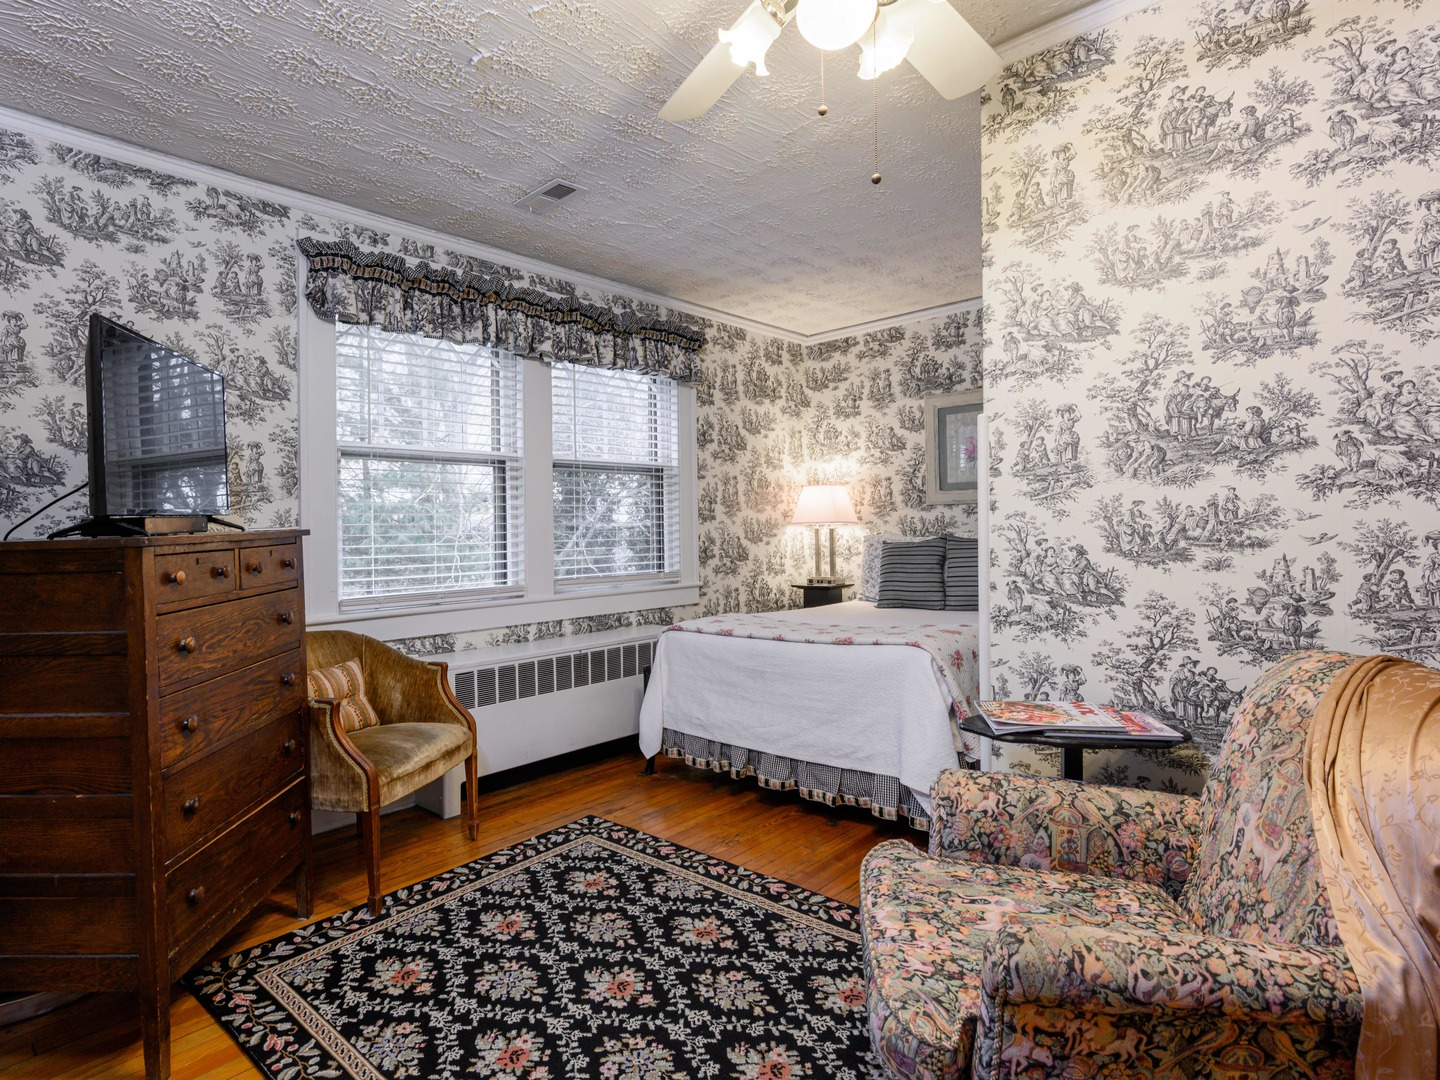 A living room filled with furniture and a fireplace at Oakland Cottage Bed and Breakfast.